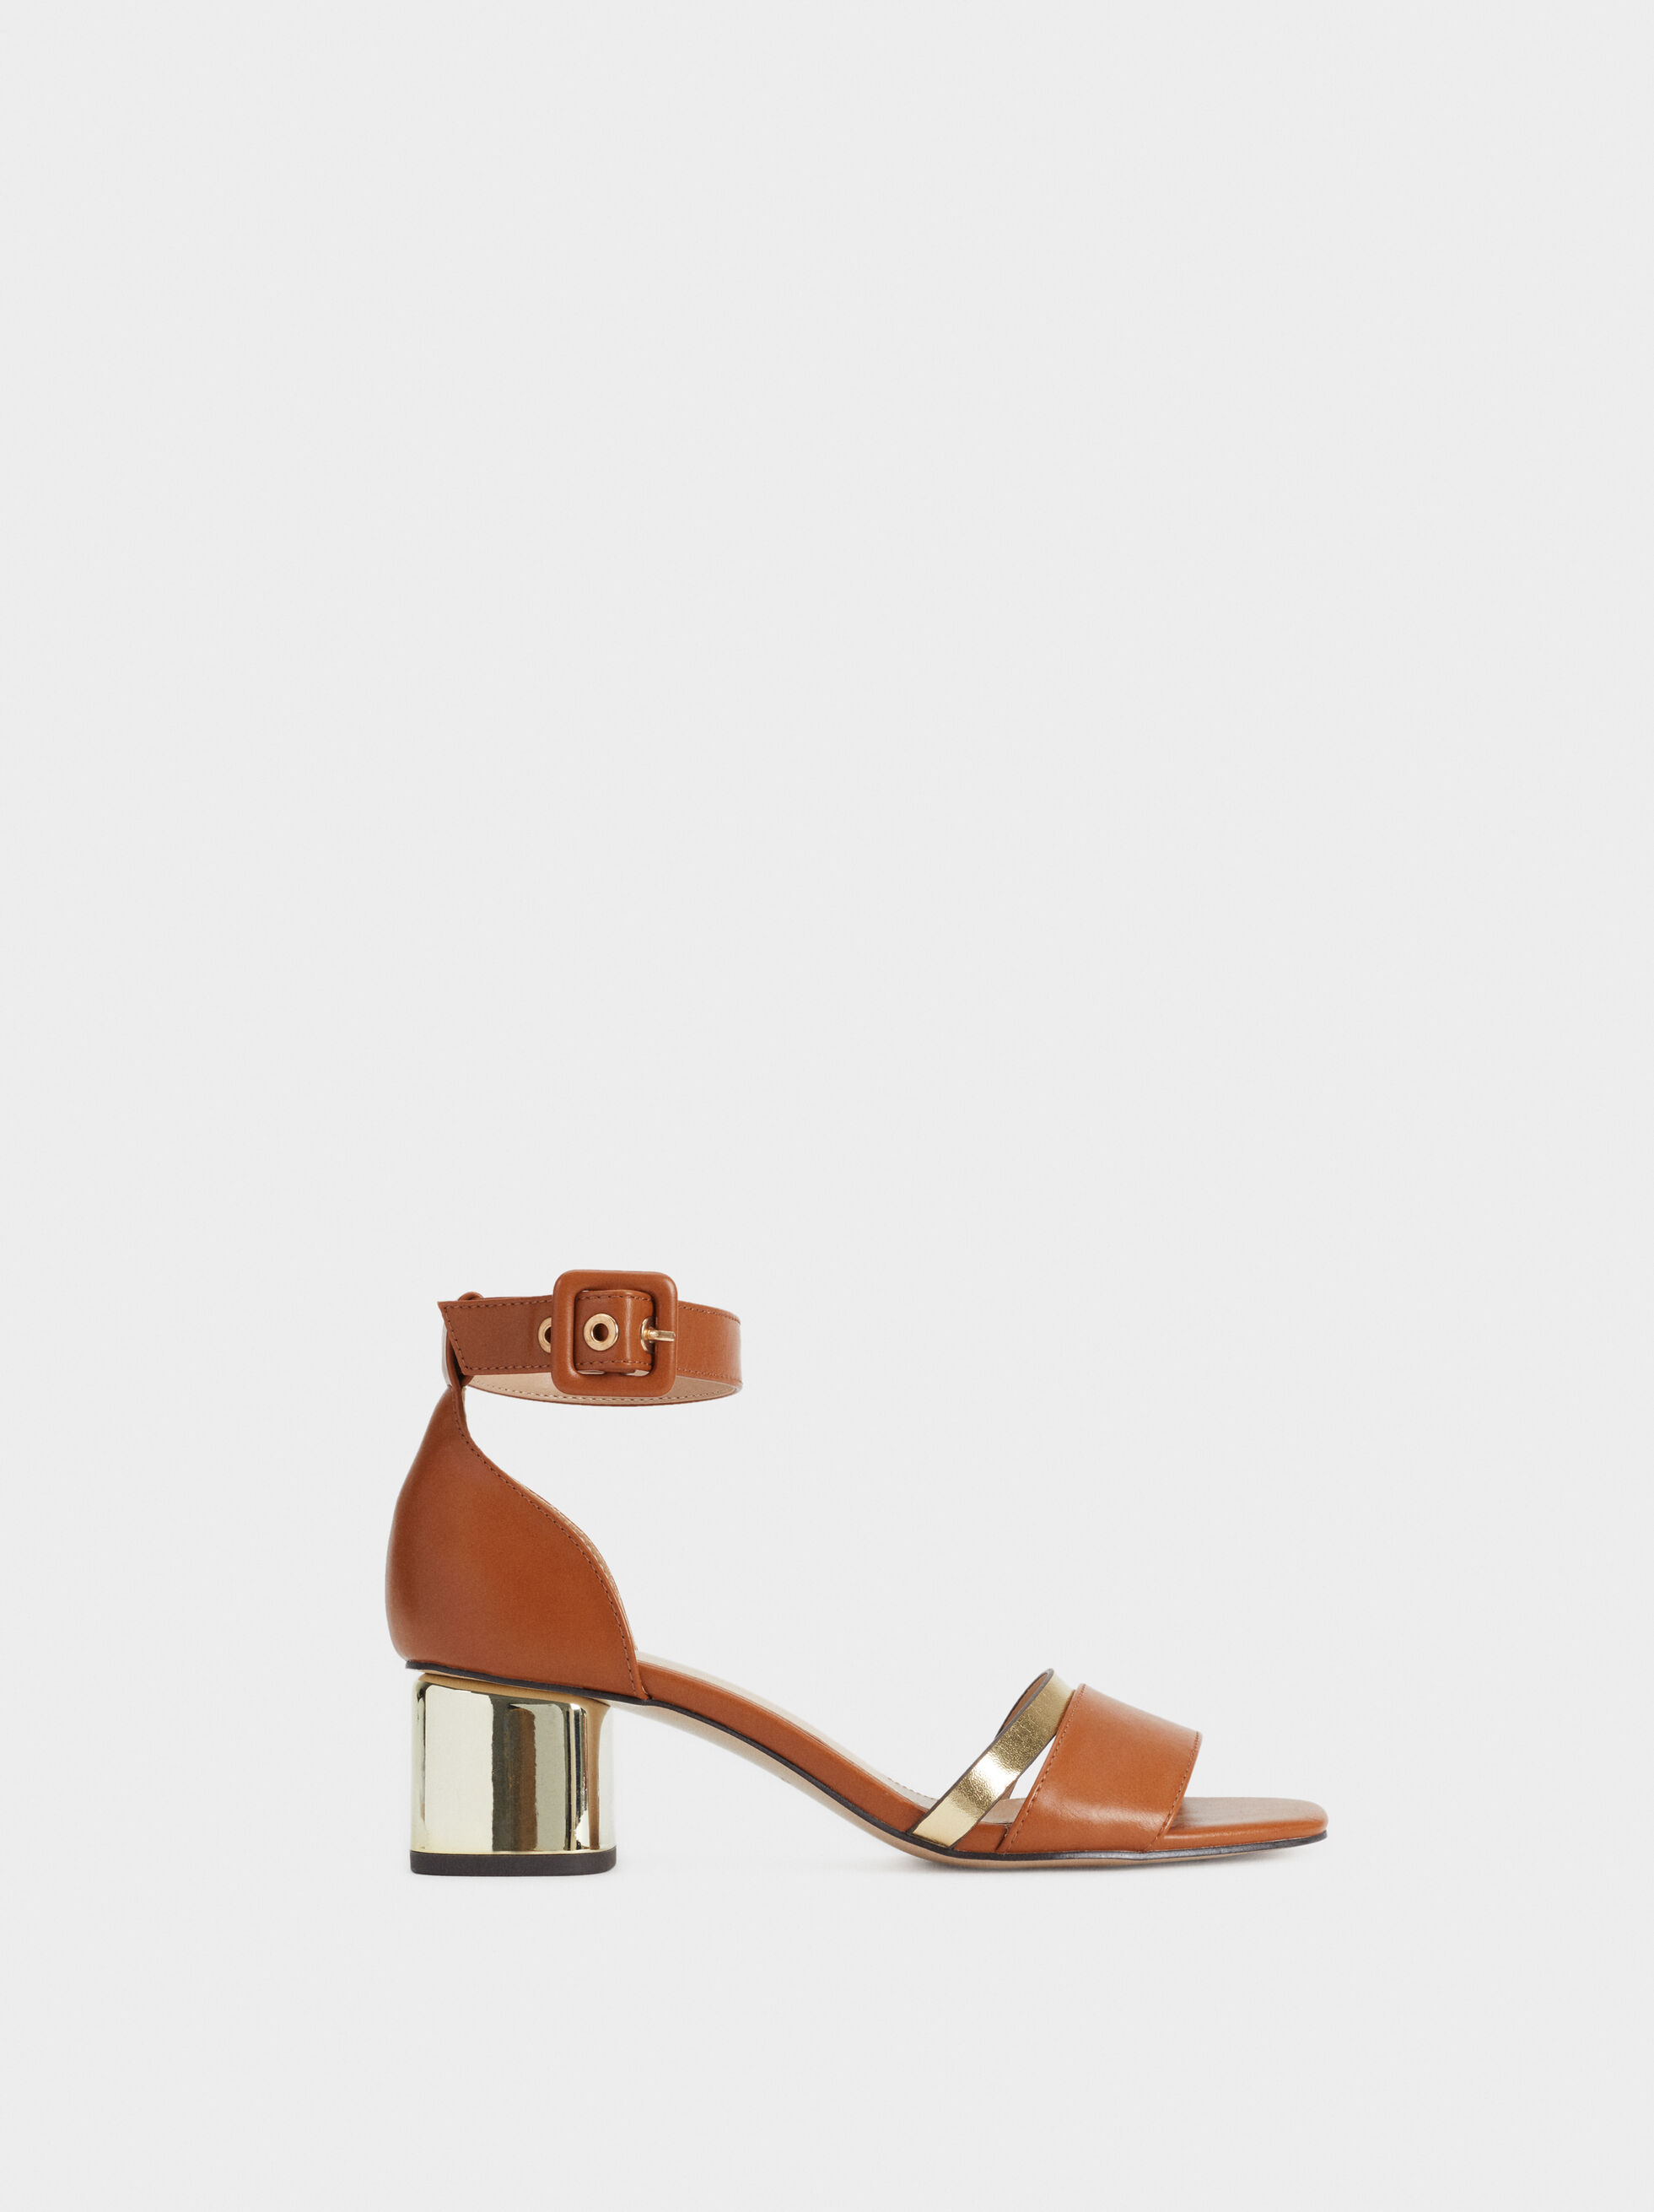 Sandals With Metallic Heel, , hi-res